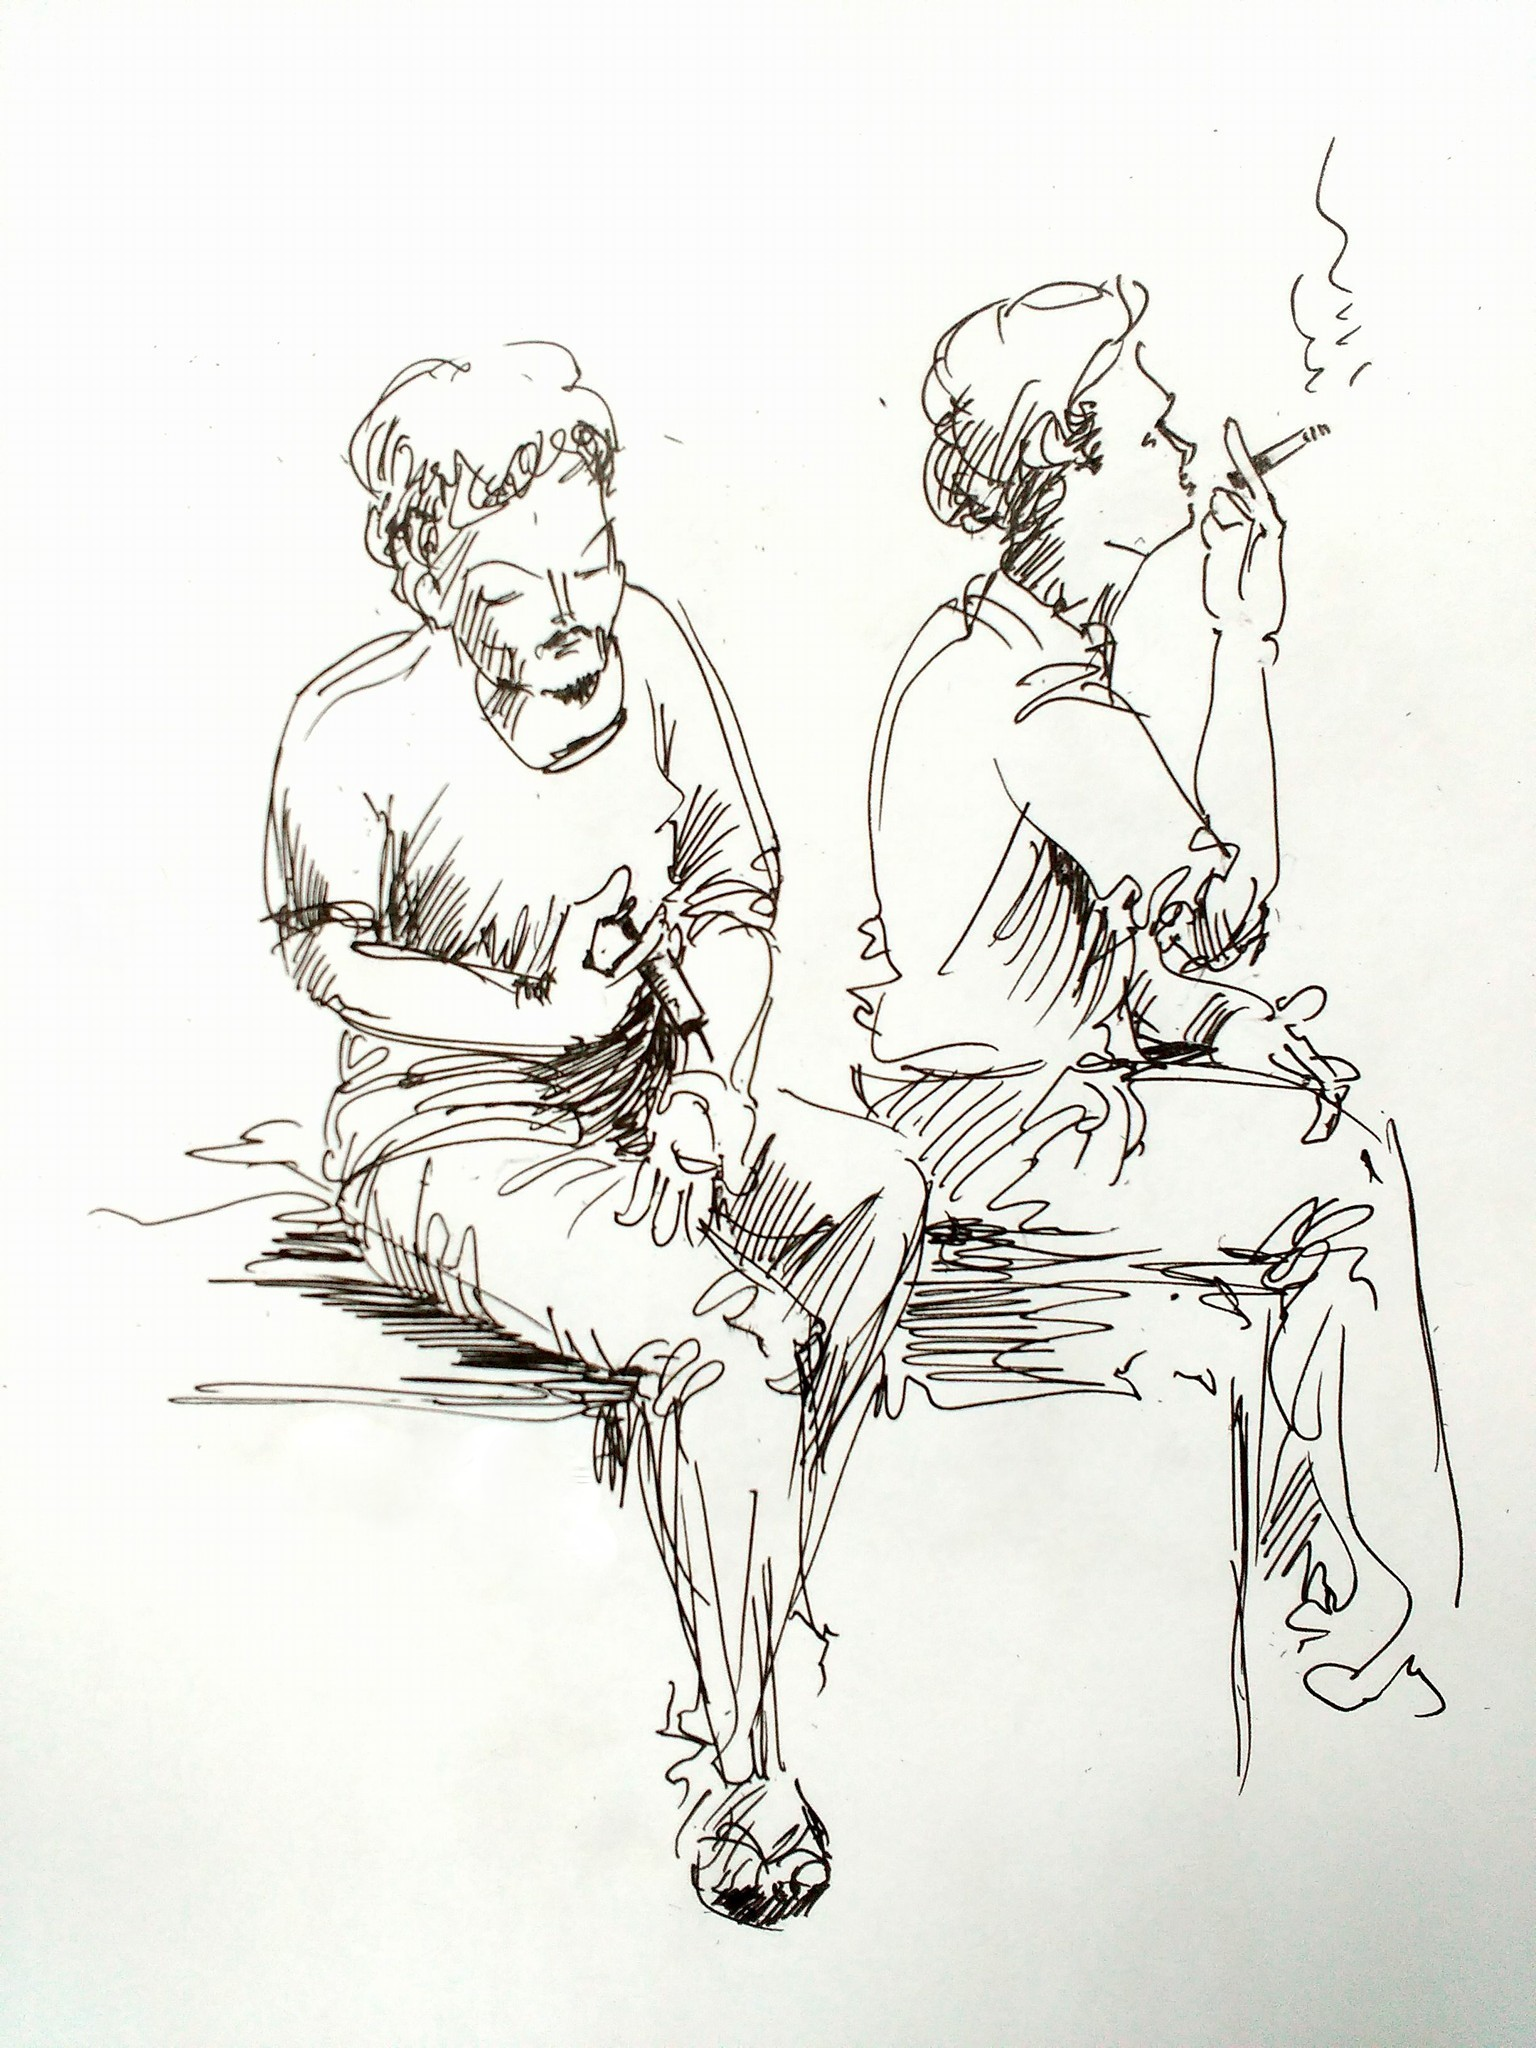 1536x2048 Comic Sketch Of Quit Smoking Pencil Shades